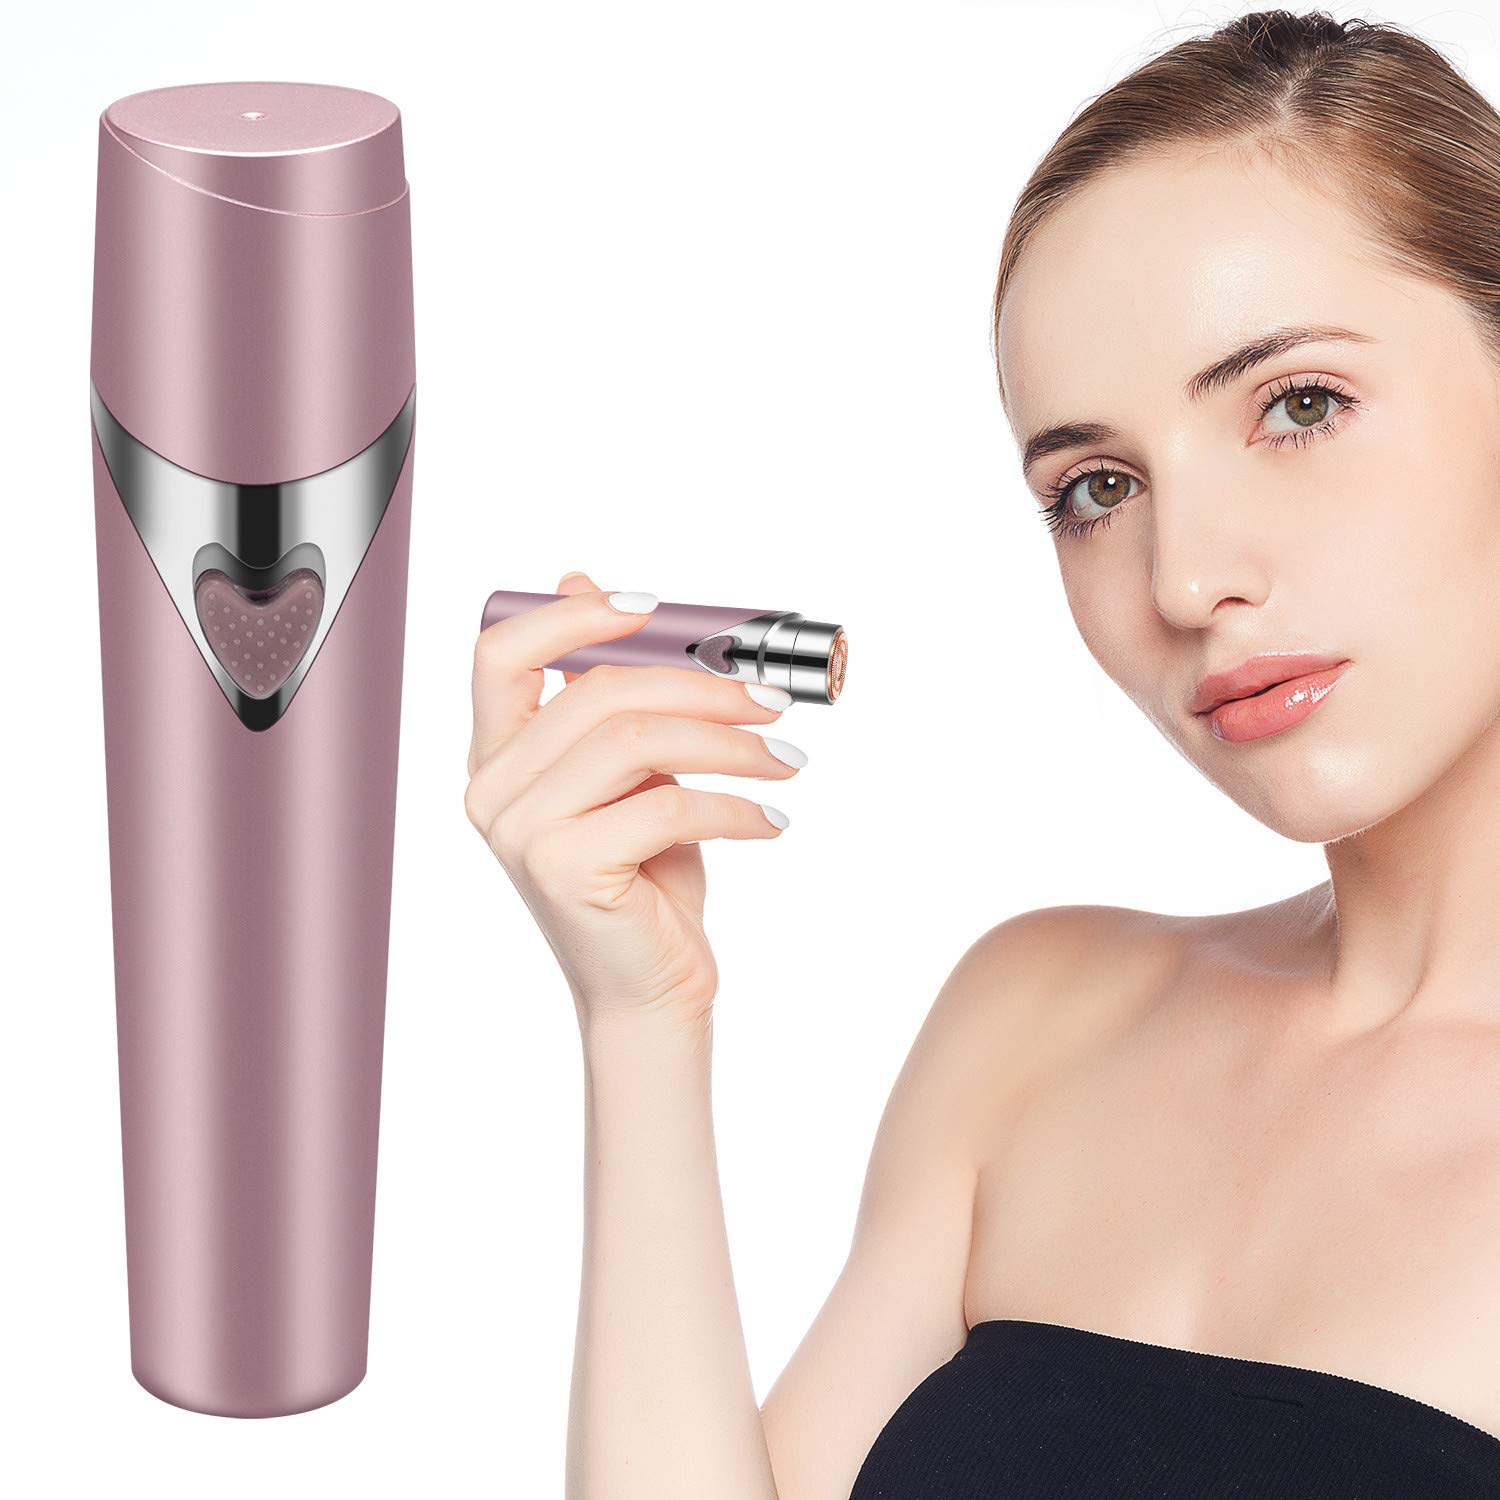 Facial Hair Remover for Women, Painless Women\'s Electric Shaver Face Hair Removal Razor for Chin Hair, Upper Lip Moustaches, Peach Fuzz and Cheek